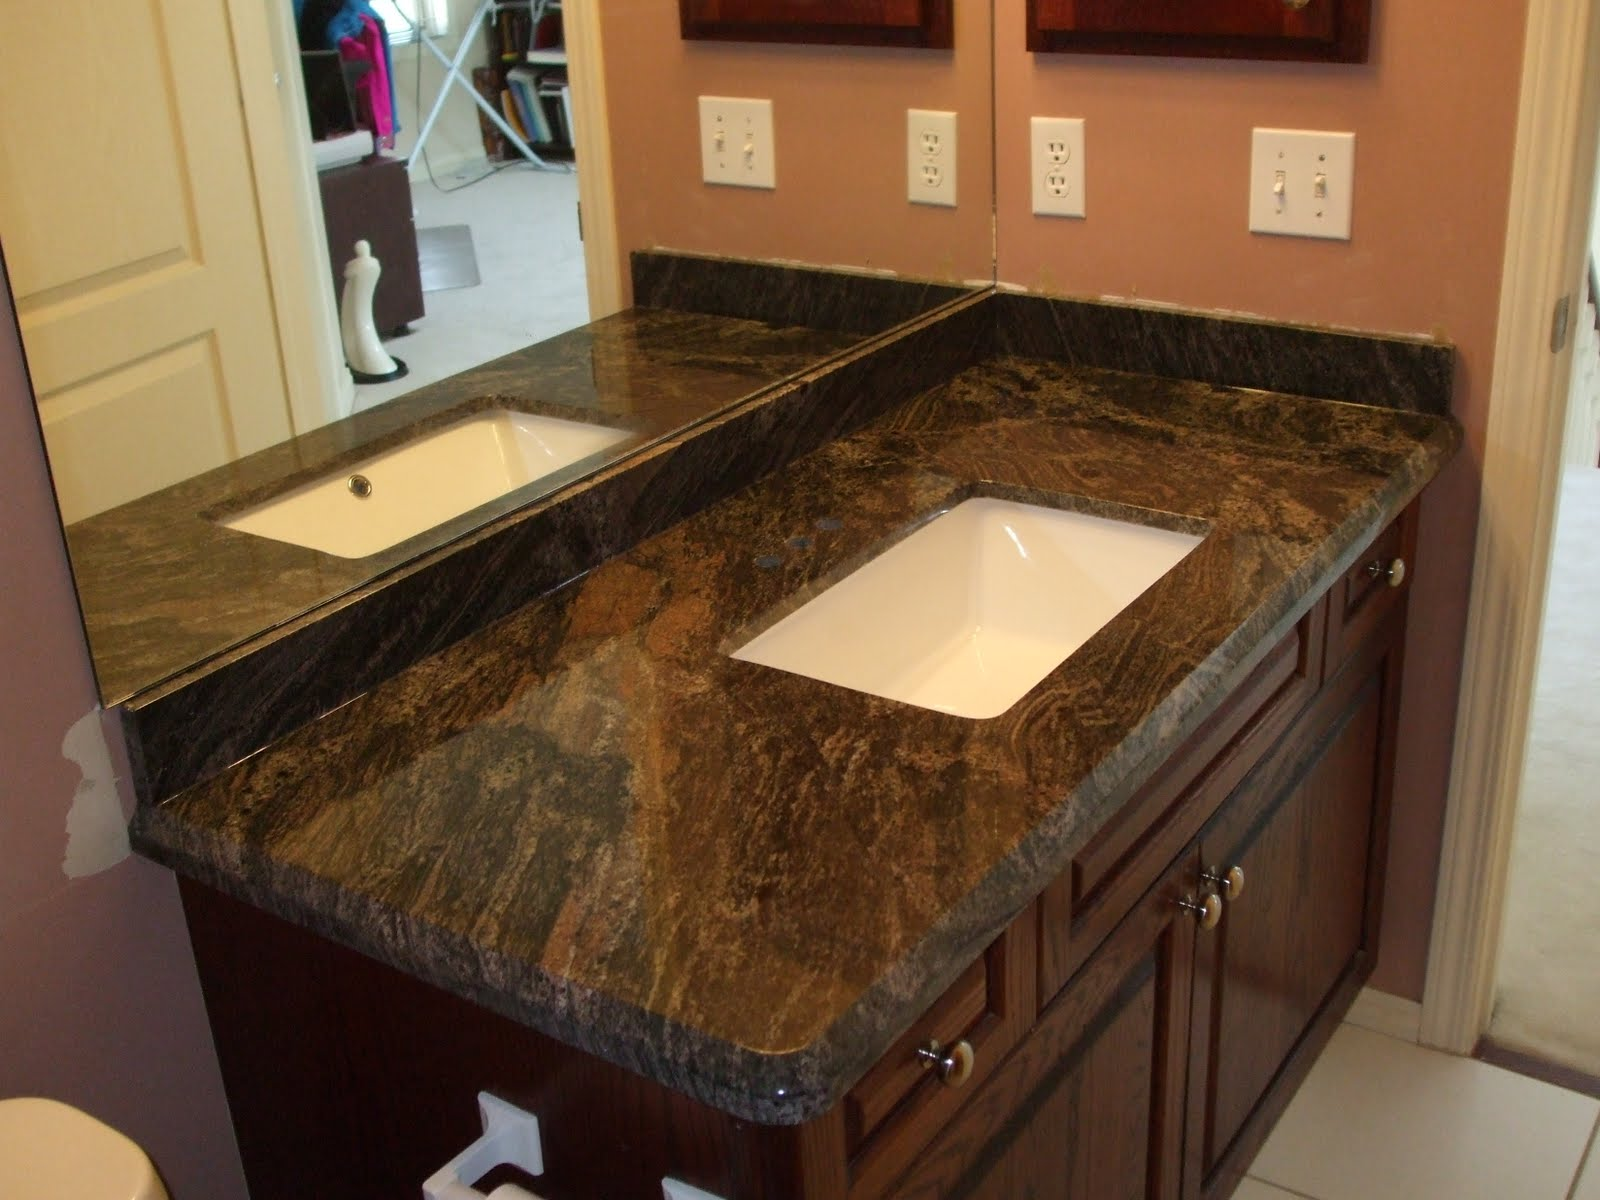 Best Granite : Granite Countertops 1024x768 Juparana Lapidus Granite Countertops 3587 ...